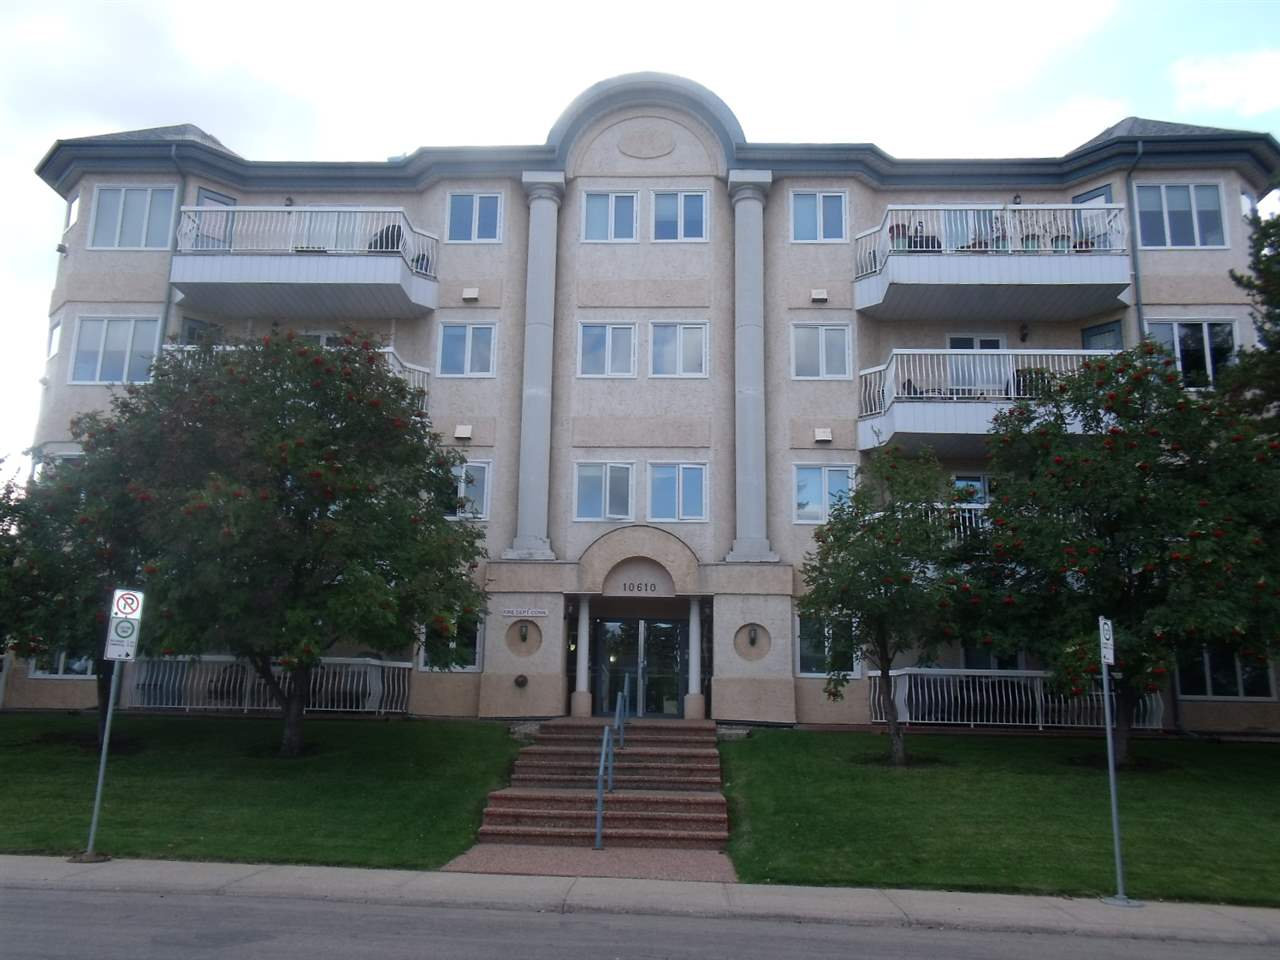 Well-kept spacious 1270 sq.ft. 2 Bdrm. 2 Bathrm. Top Floor Corner Unit in the Californian Capilano located in mature Forest Heights. This Upgraded unit features a huge, bright Living Rm. w/9 ft. ceiling, New Hardwood flooring, Gas Fireplace & Garden Door to roomy Deck w/Gas outlet for BBQ, overlooking the Picnic Area & Gazebo. Separate Dining Rm. off the Living Rm. with double French Doors could also be used as a 3rd Bedrm. Den or Office. Spacious Master Bedrm. has walk-thru closet to ensuite Bathroom. Another full Bath is conveniently located across from the Guest Bedroom. Large Kitchen area w/Eating Bar, ample Oak Cabinets & Counter space. Corner Pantry & good-sized Laundry Rm. are welcome additions. Upgrades include Vinyl Windows, New Hardwood Flooring, New Carpets, New Paint, New Fixtures. This popular  complex features Titled Heated Underground Parking, plus extra  stall, Storage Rm. Guest Suite, Party Rm & easy access to shopping, Whyte Ave., Downtown, River Valley Trails & Recreation Facilities.